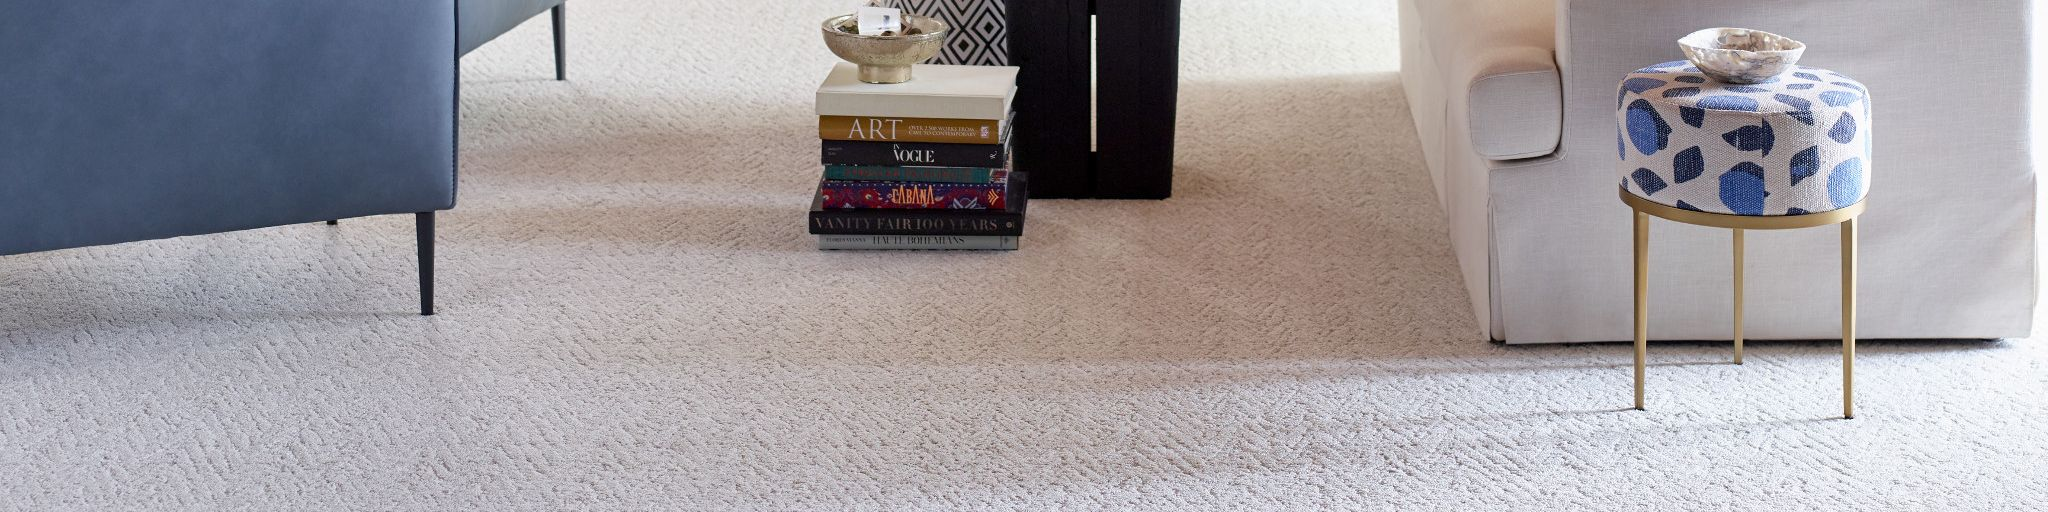 coty-mediterranean-carpet-lavish-living-cc80b-00122-broadloom-living-room-2020